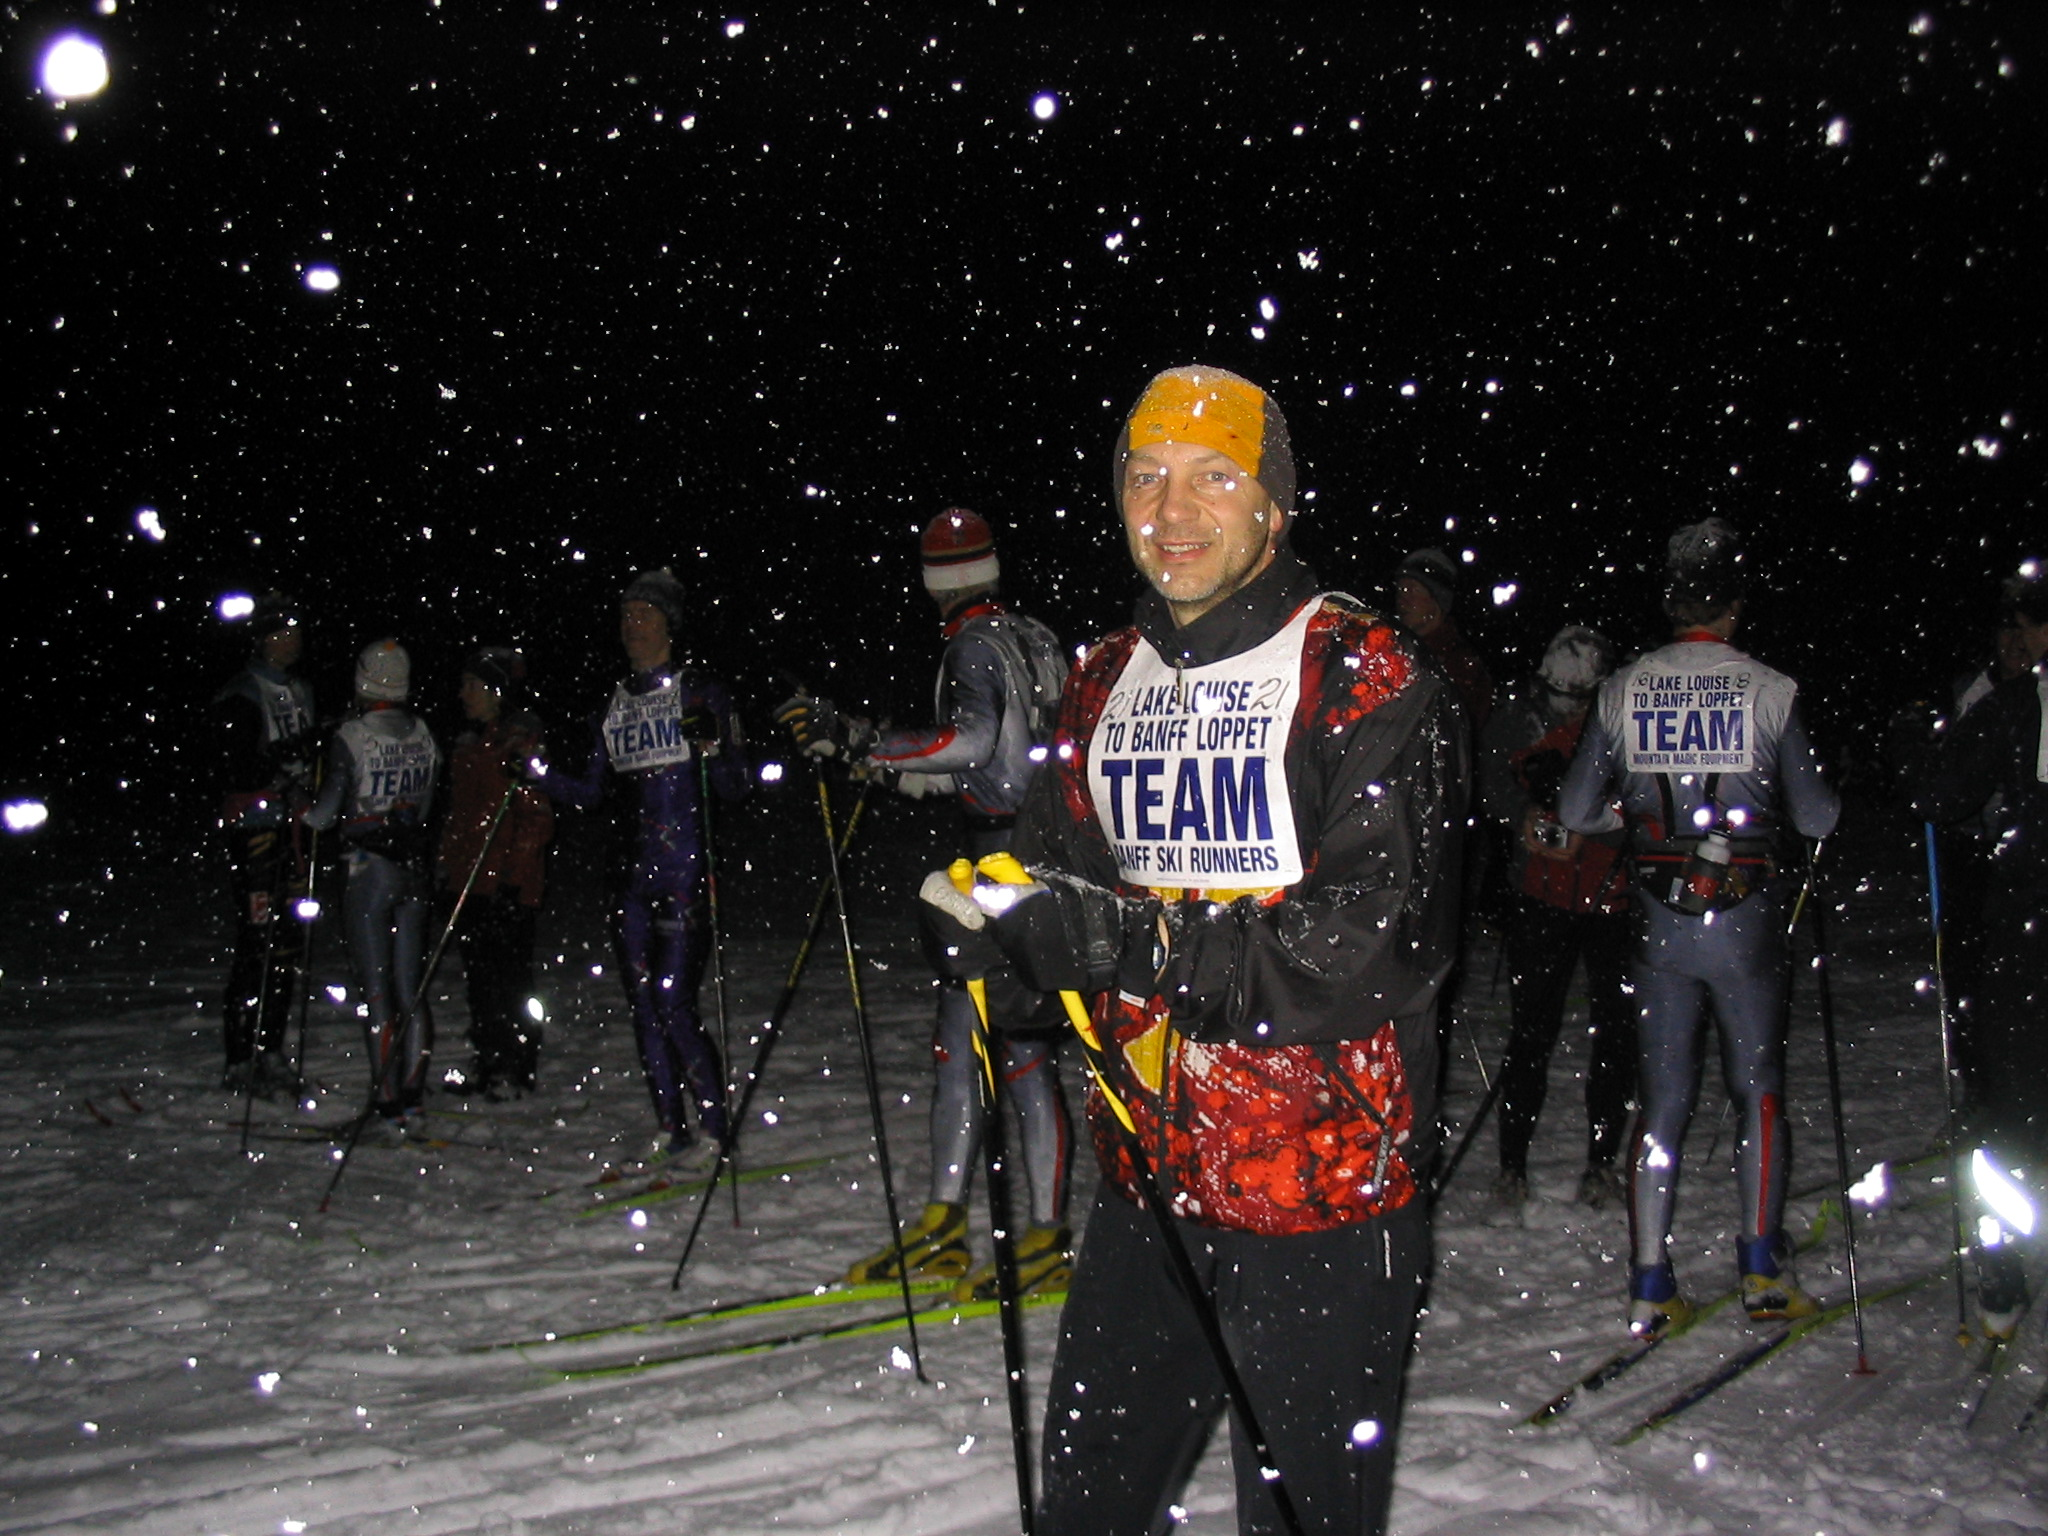 Preparing to start the Lake Louise to Banff Loppet in 2004